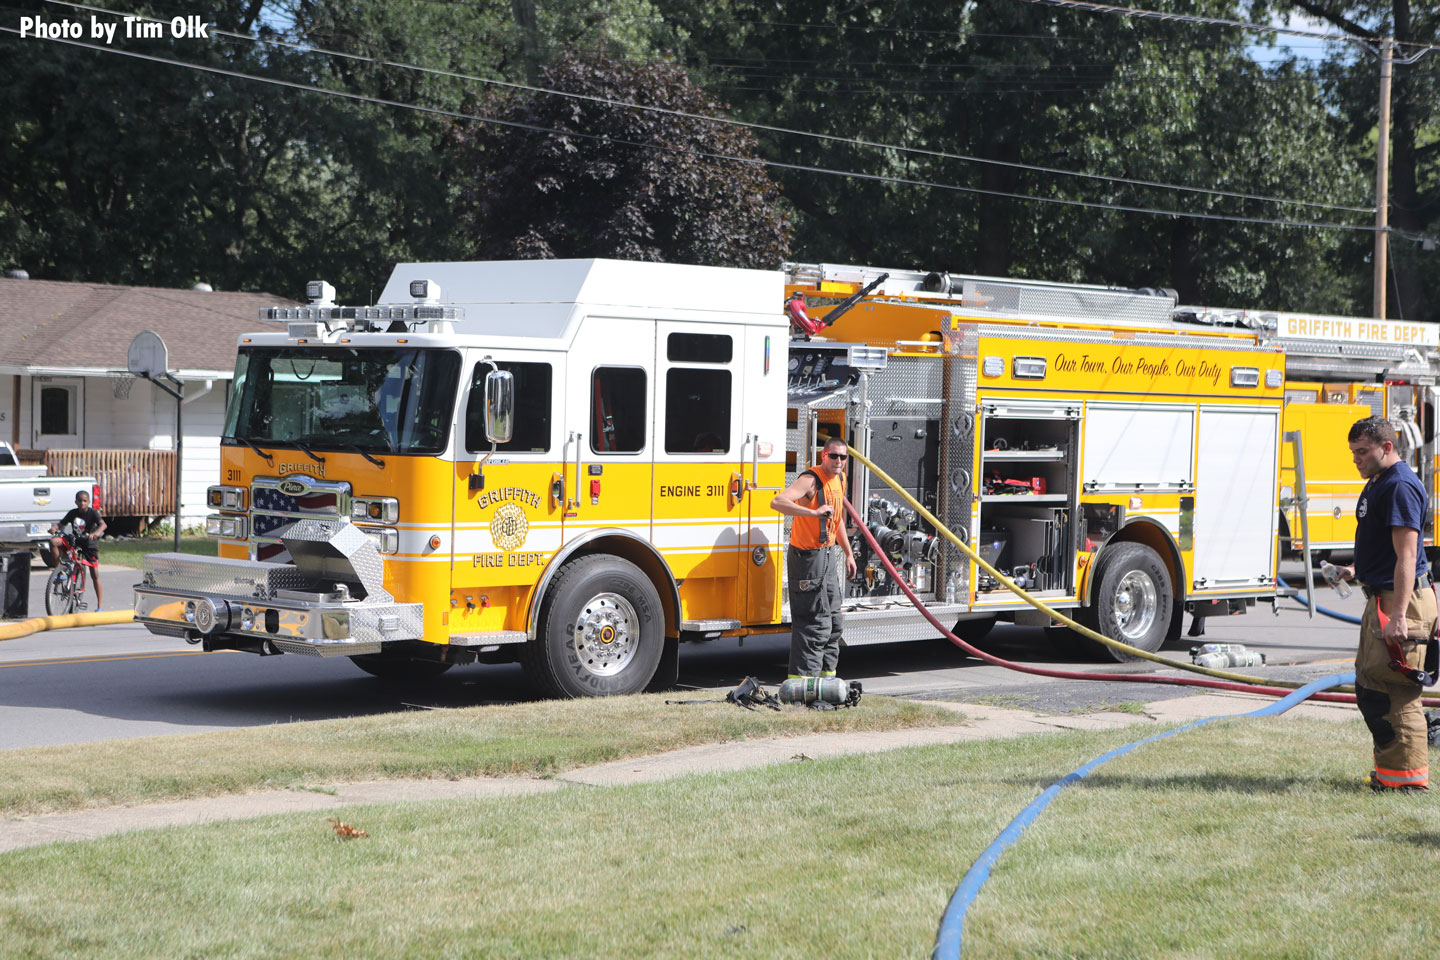 A rig on the fireground in Griffith, Indiana.